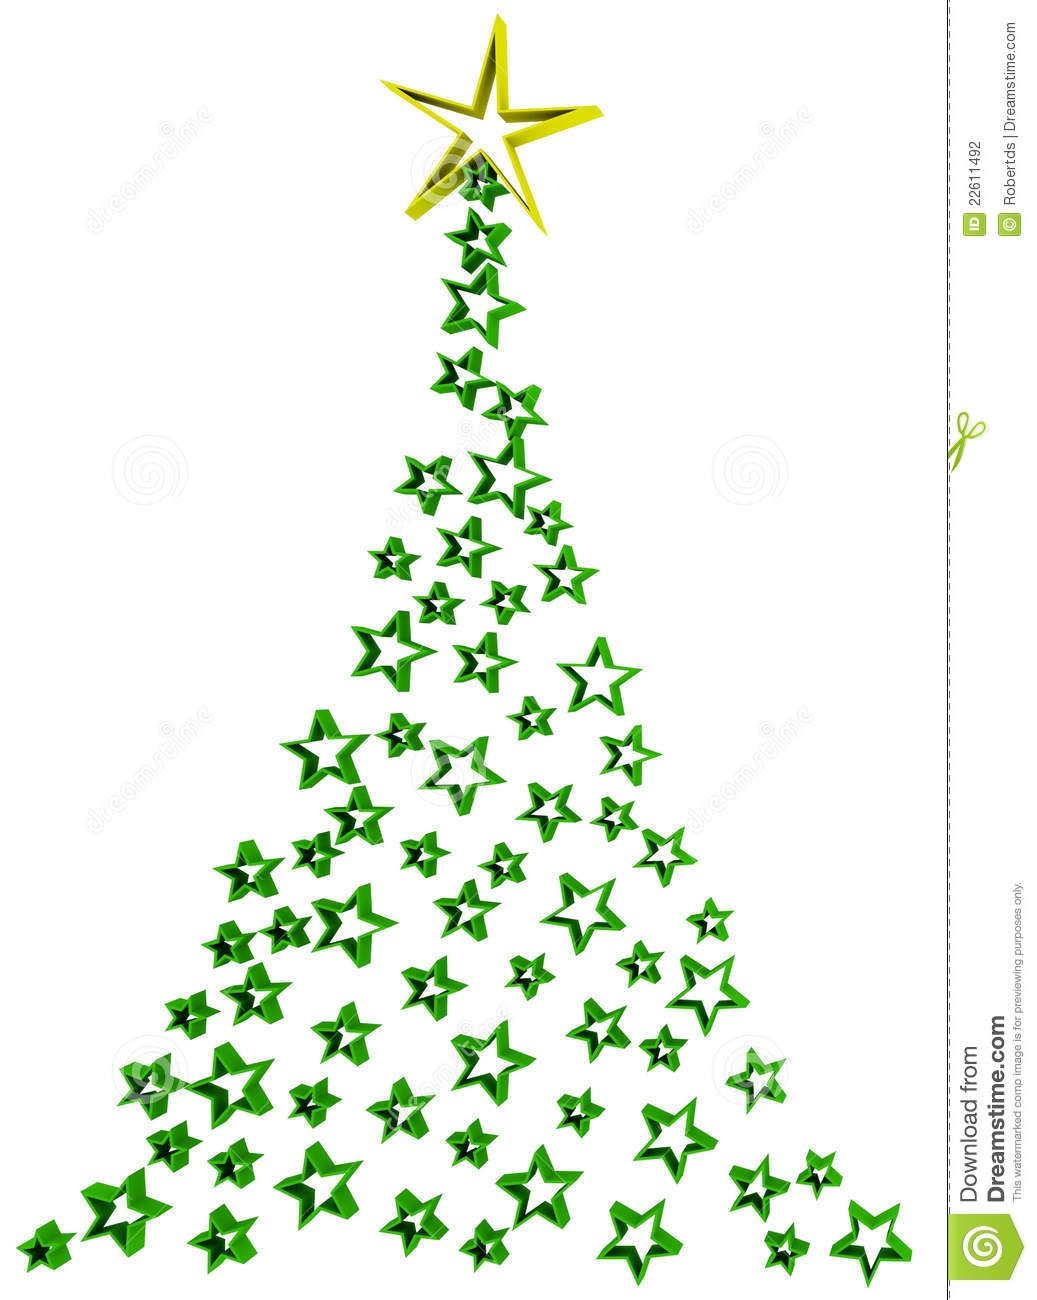 Christmas Tree clipart abstract Png Clipart Abstract Tree Christmas